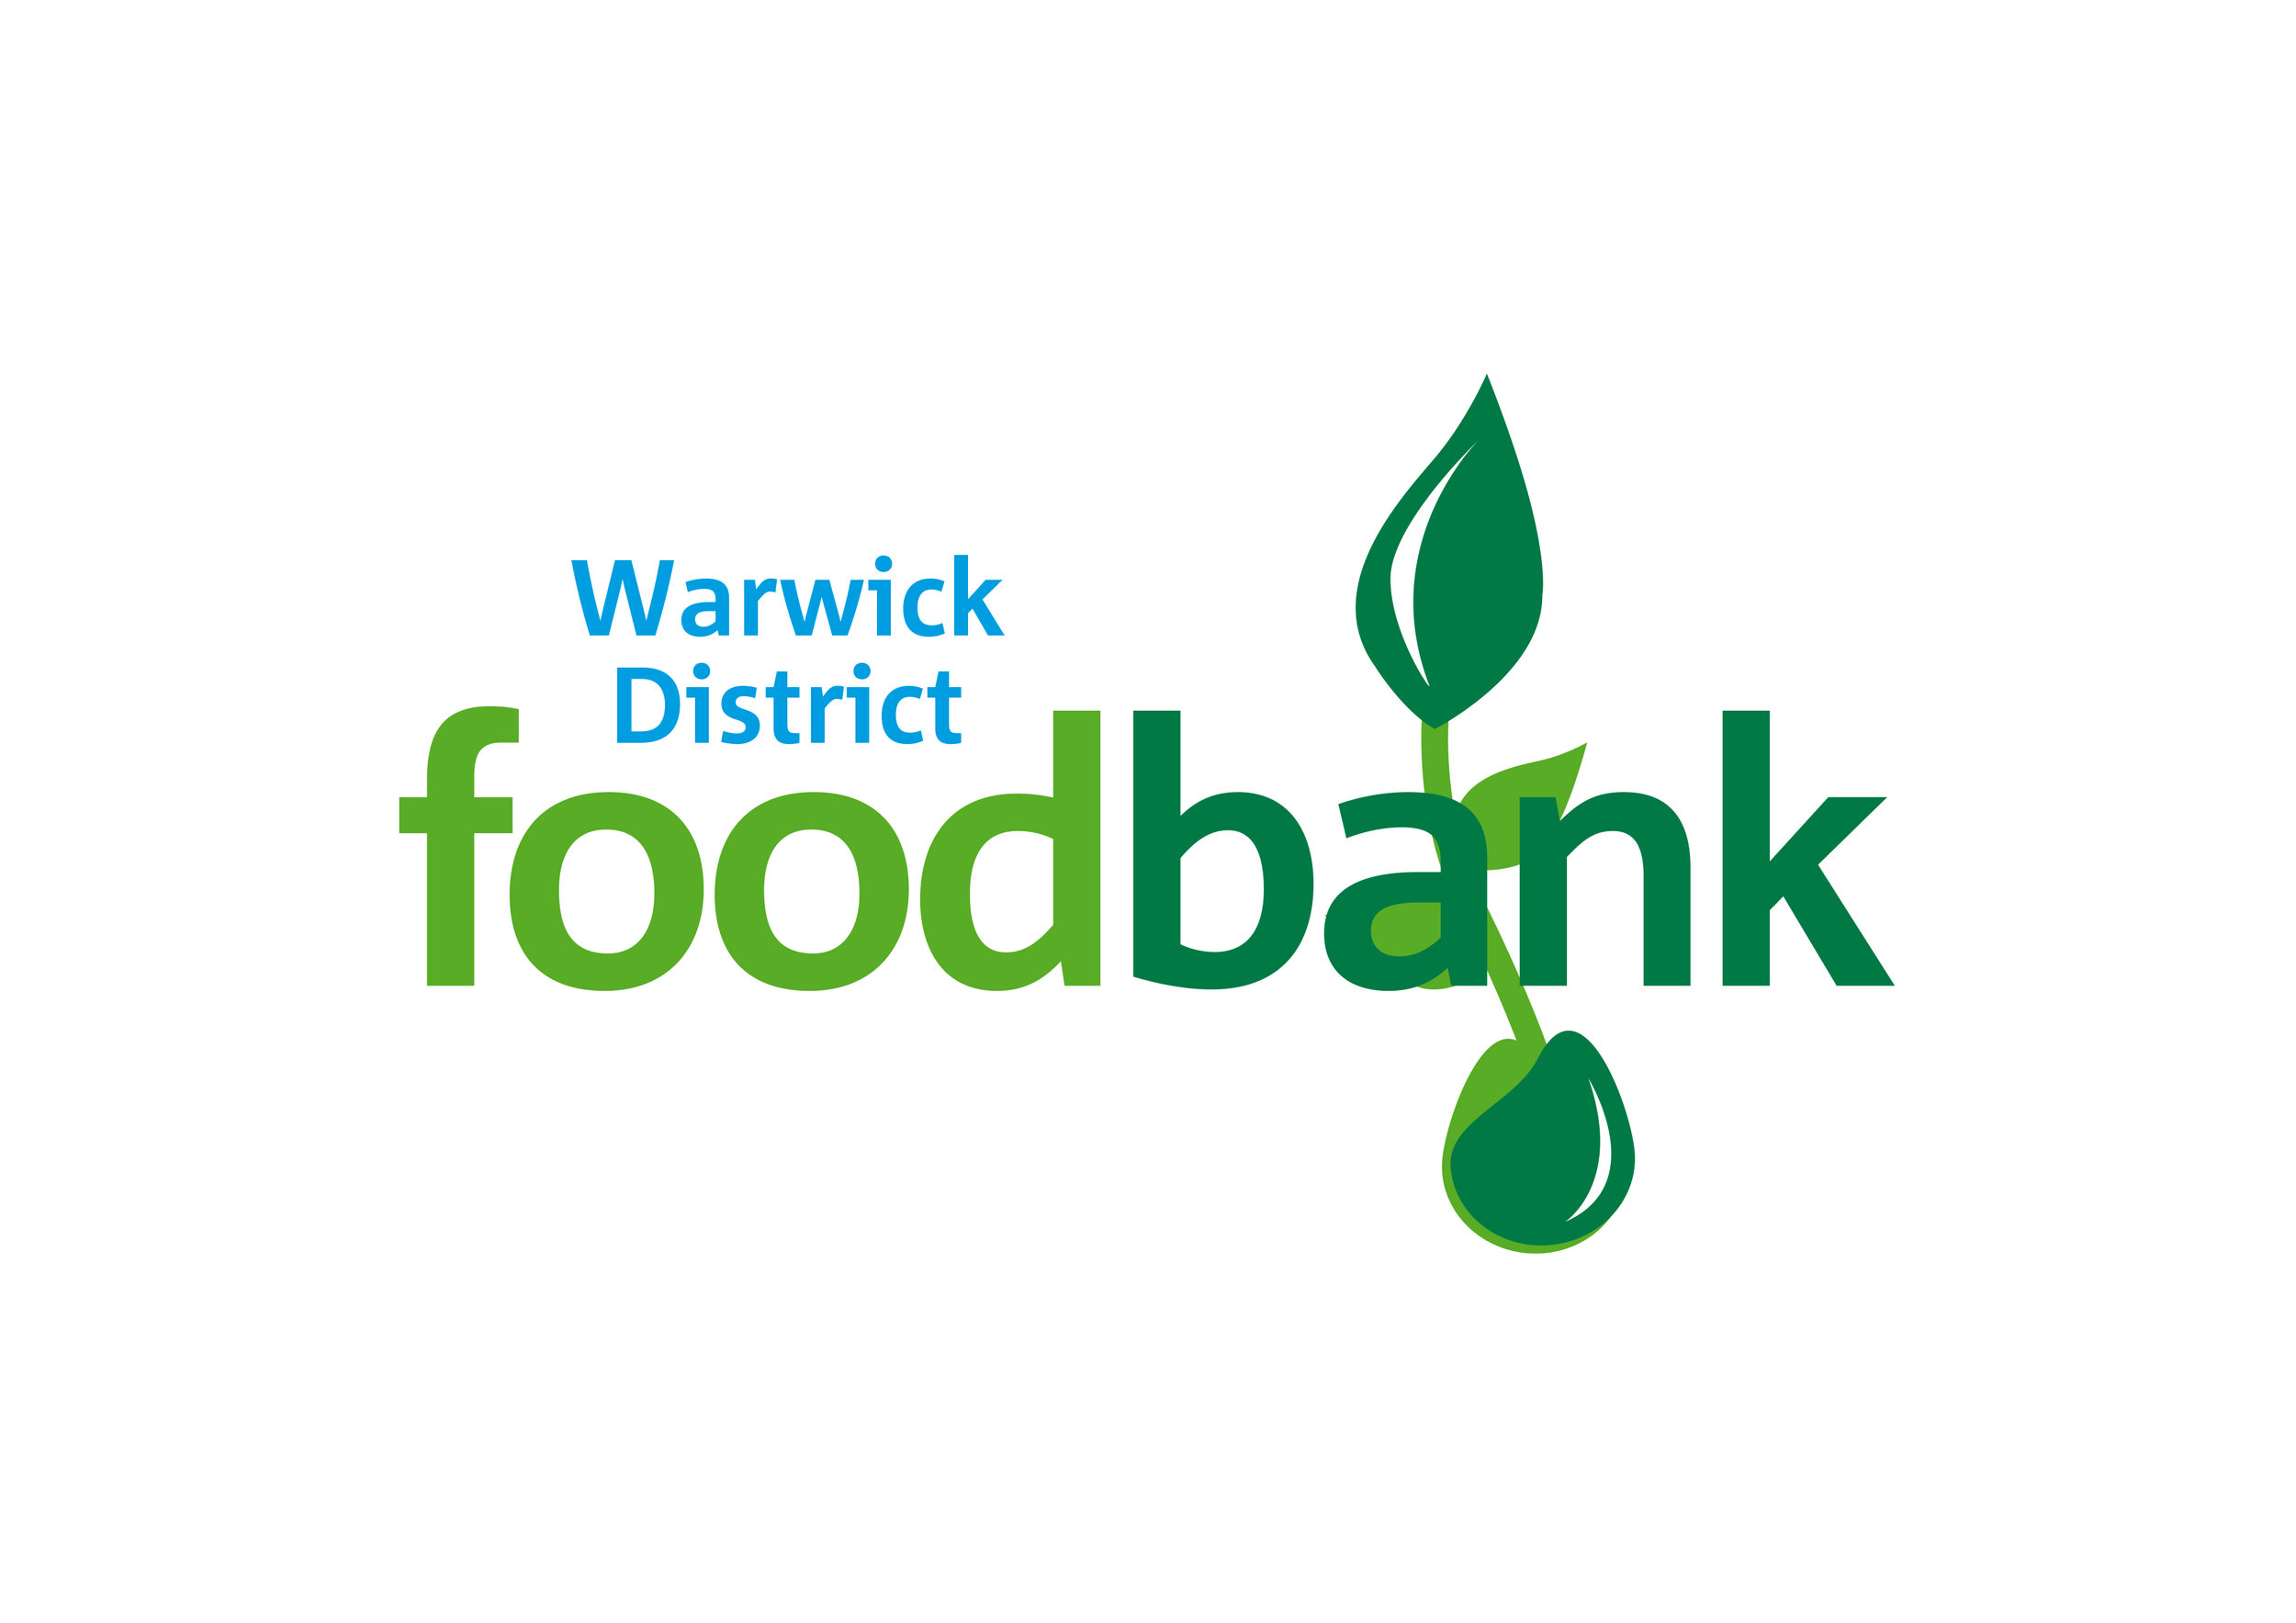 Warwick District Foodbank